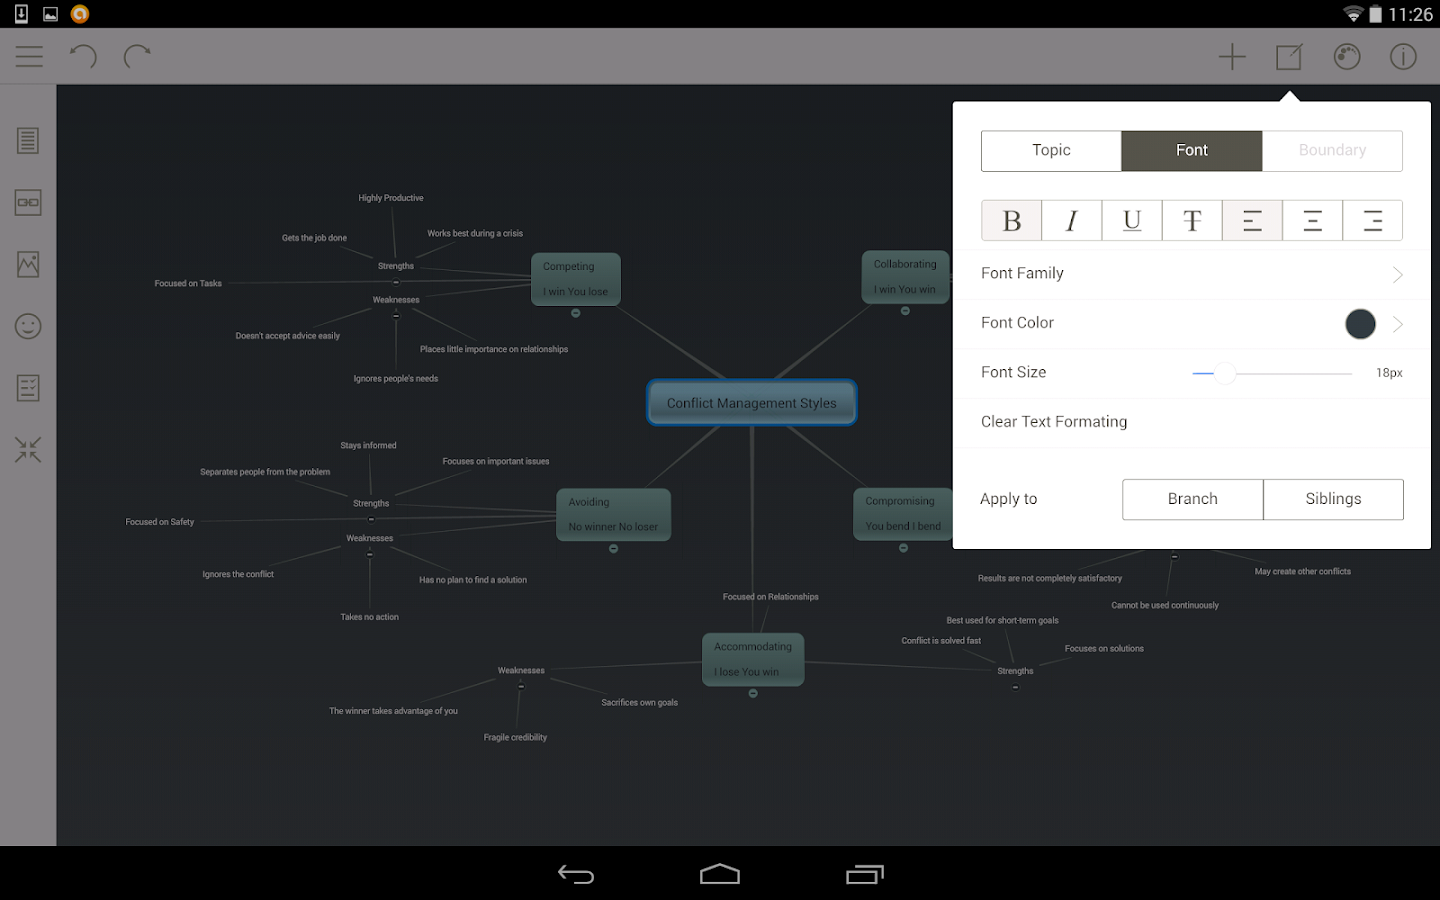 Mindomo (mind mapping)-skjermdump